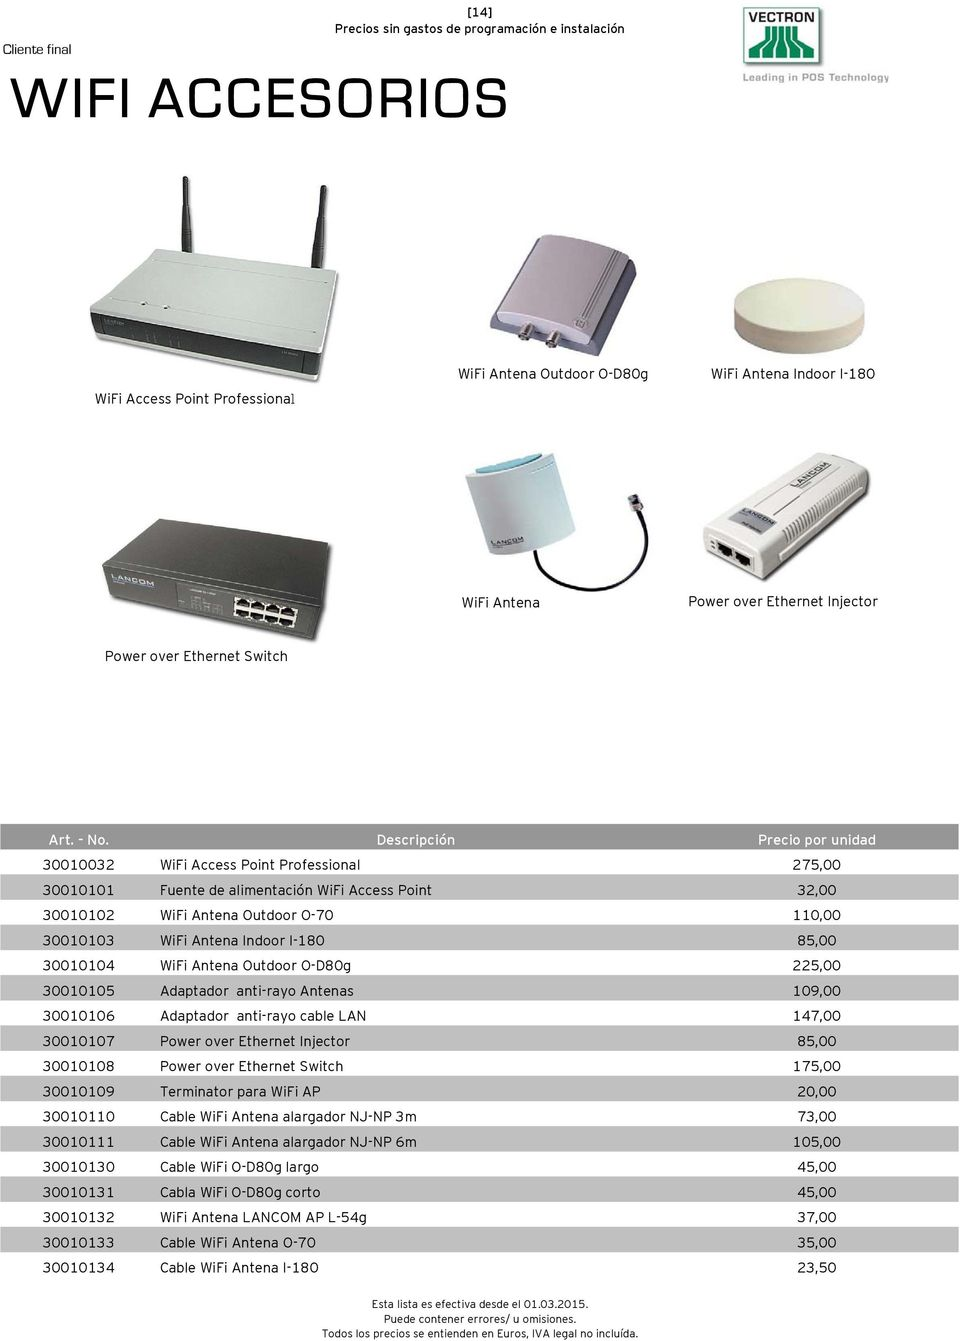 Fuente de alimentación WiFi Access Point WiFi Antena Outdoor O-70 WiFi Antena Indoor I-180 WiFi Antena Outdoor O-D80g Adaptador anti-rayo Antenas Adaptador anti-rayo cable LAN Power over Ethernet